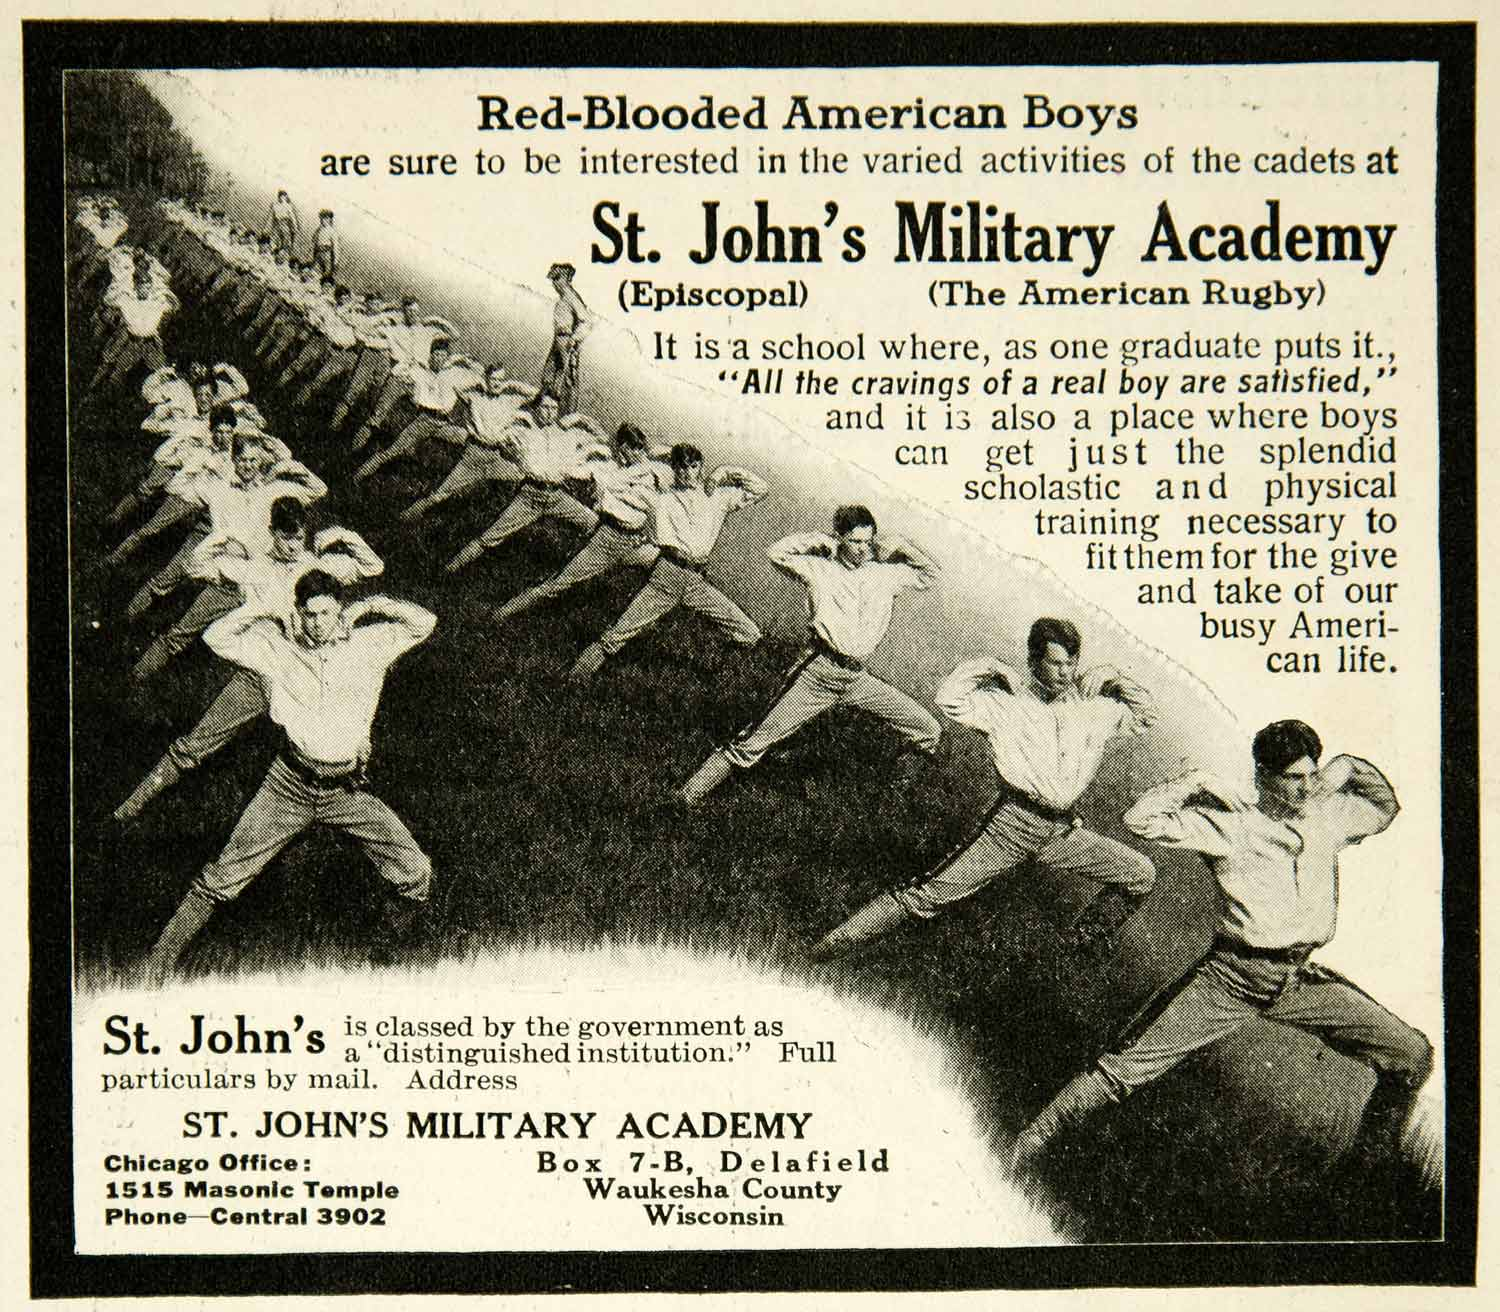 1912 Ad St Johns Military Academy 1515 Masonic Temple Chicago IL Episcopal YAB1